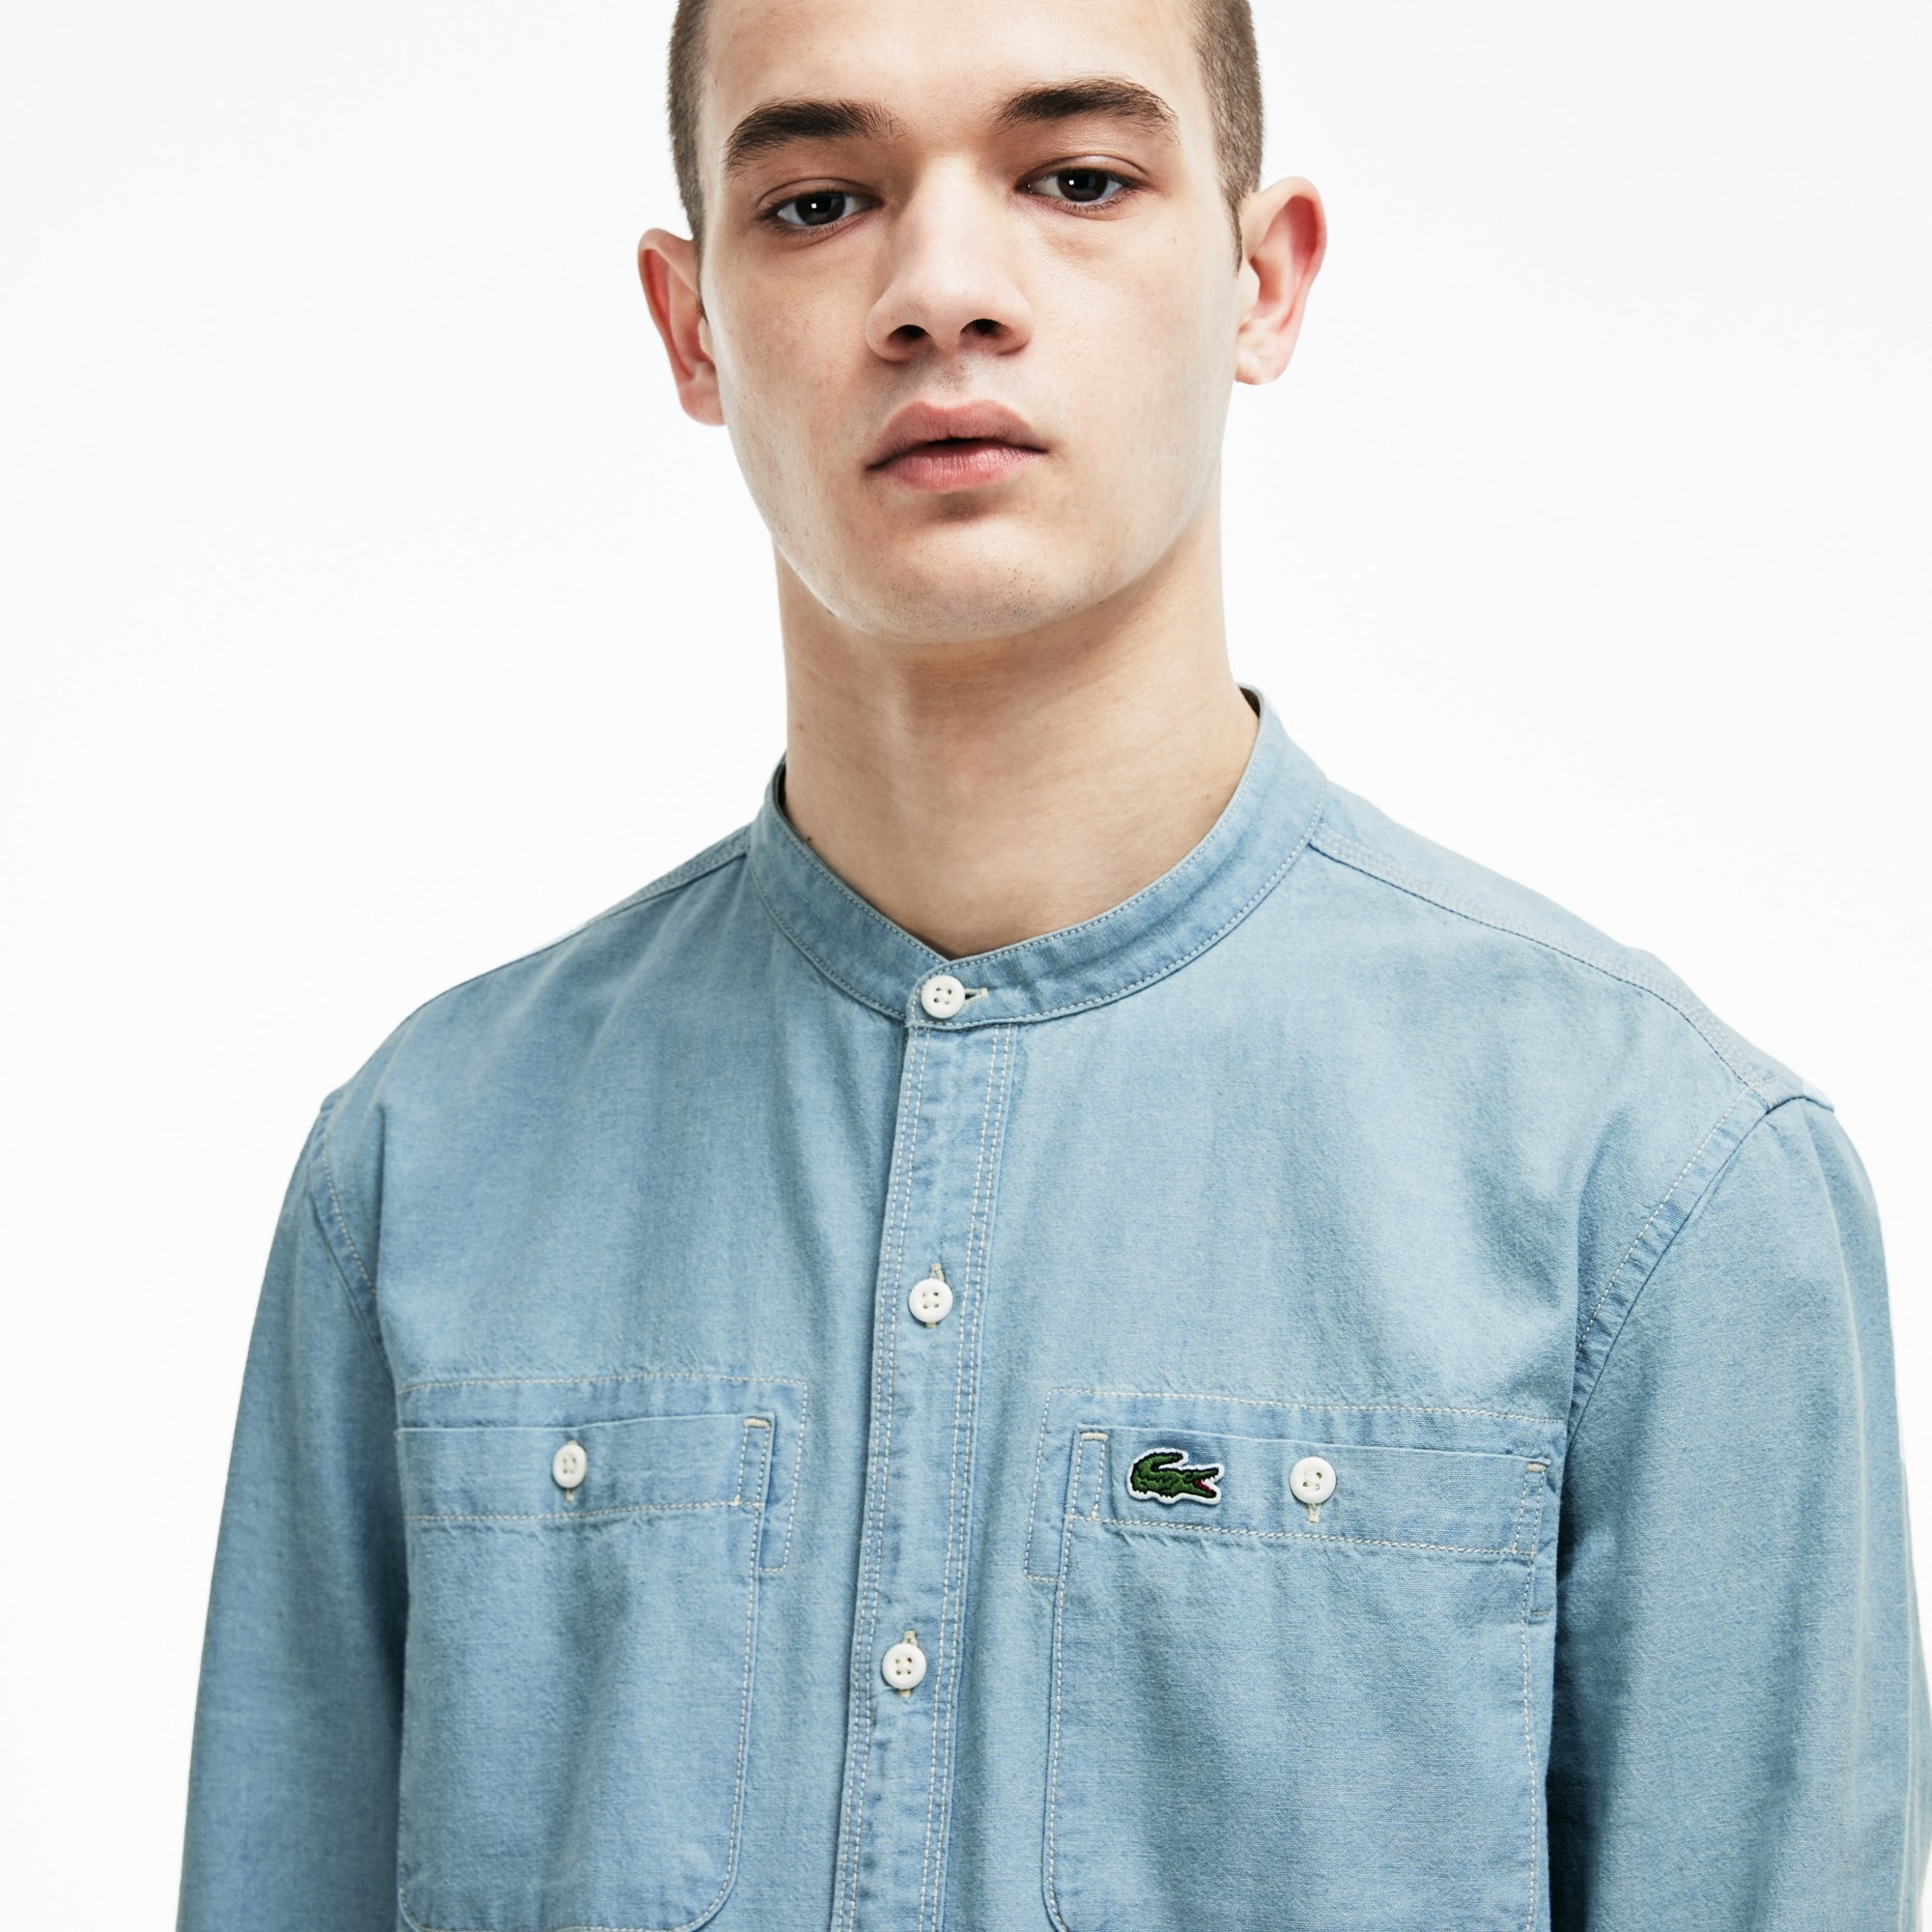 Men's Lacoste LIVE Skinny Fit Mao Collar Chambray Cotton Shirt